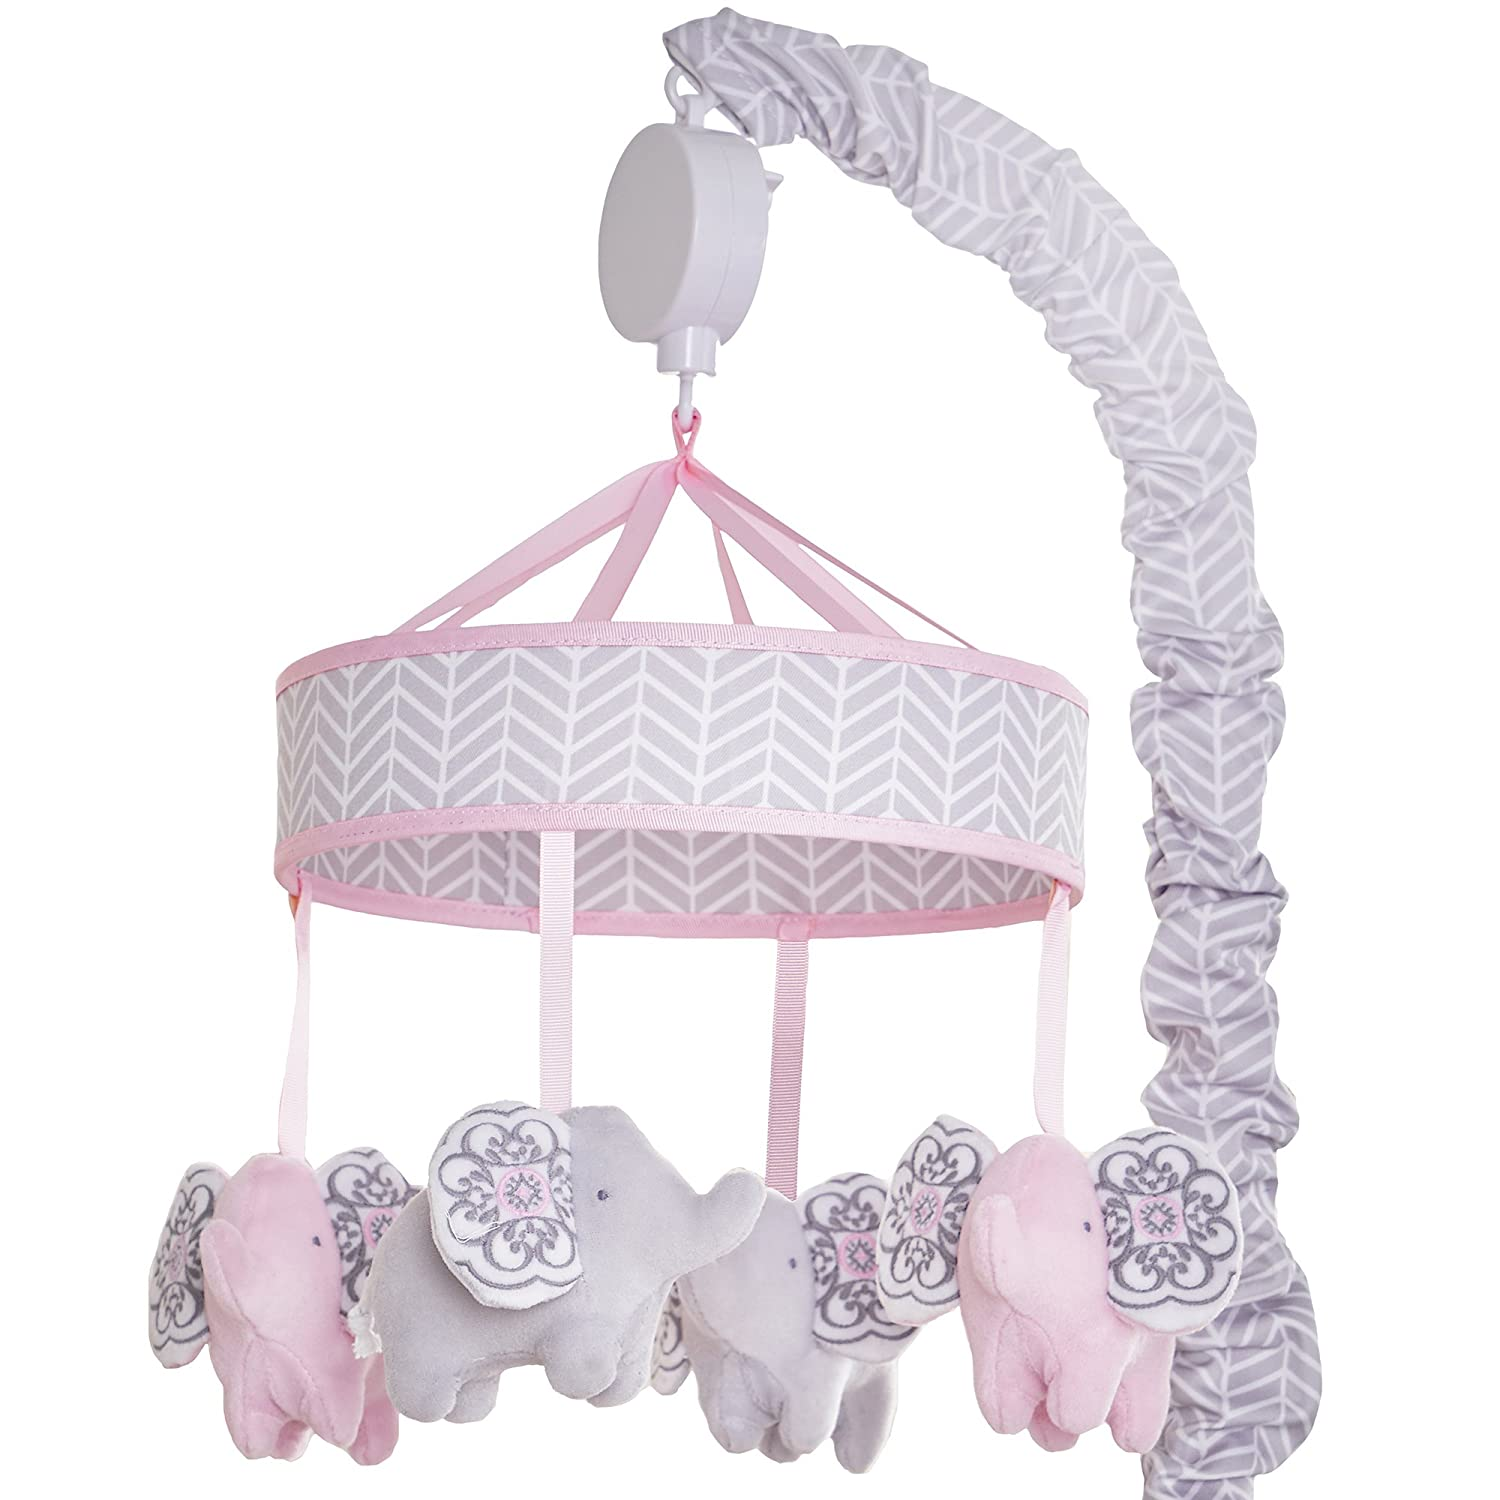 Amazon.com : Wendy Bellissimo Baby Mobile Crib Mobile Musical Mobile - Elephant Mobile from the Hudson Collection in Grey and White : Baby